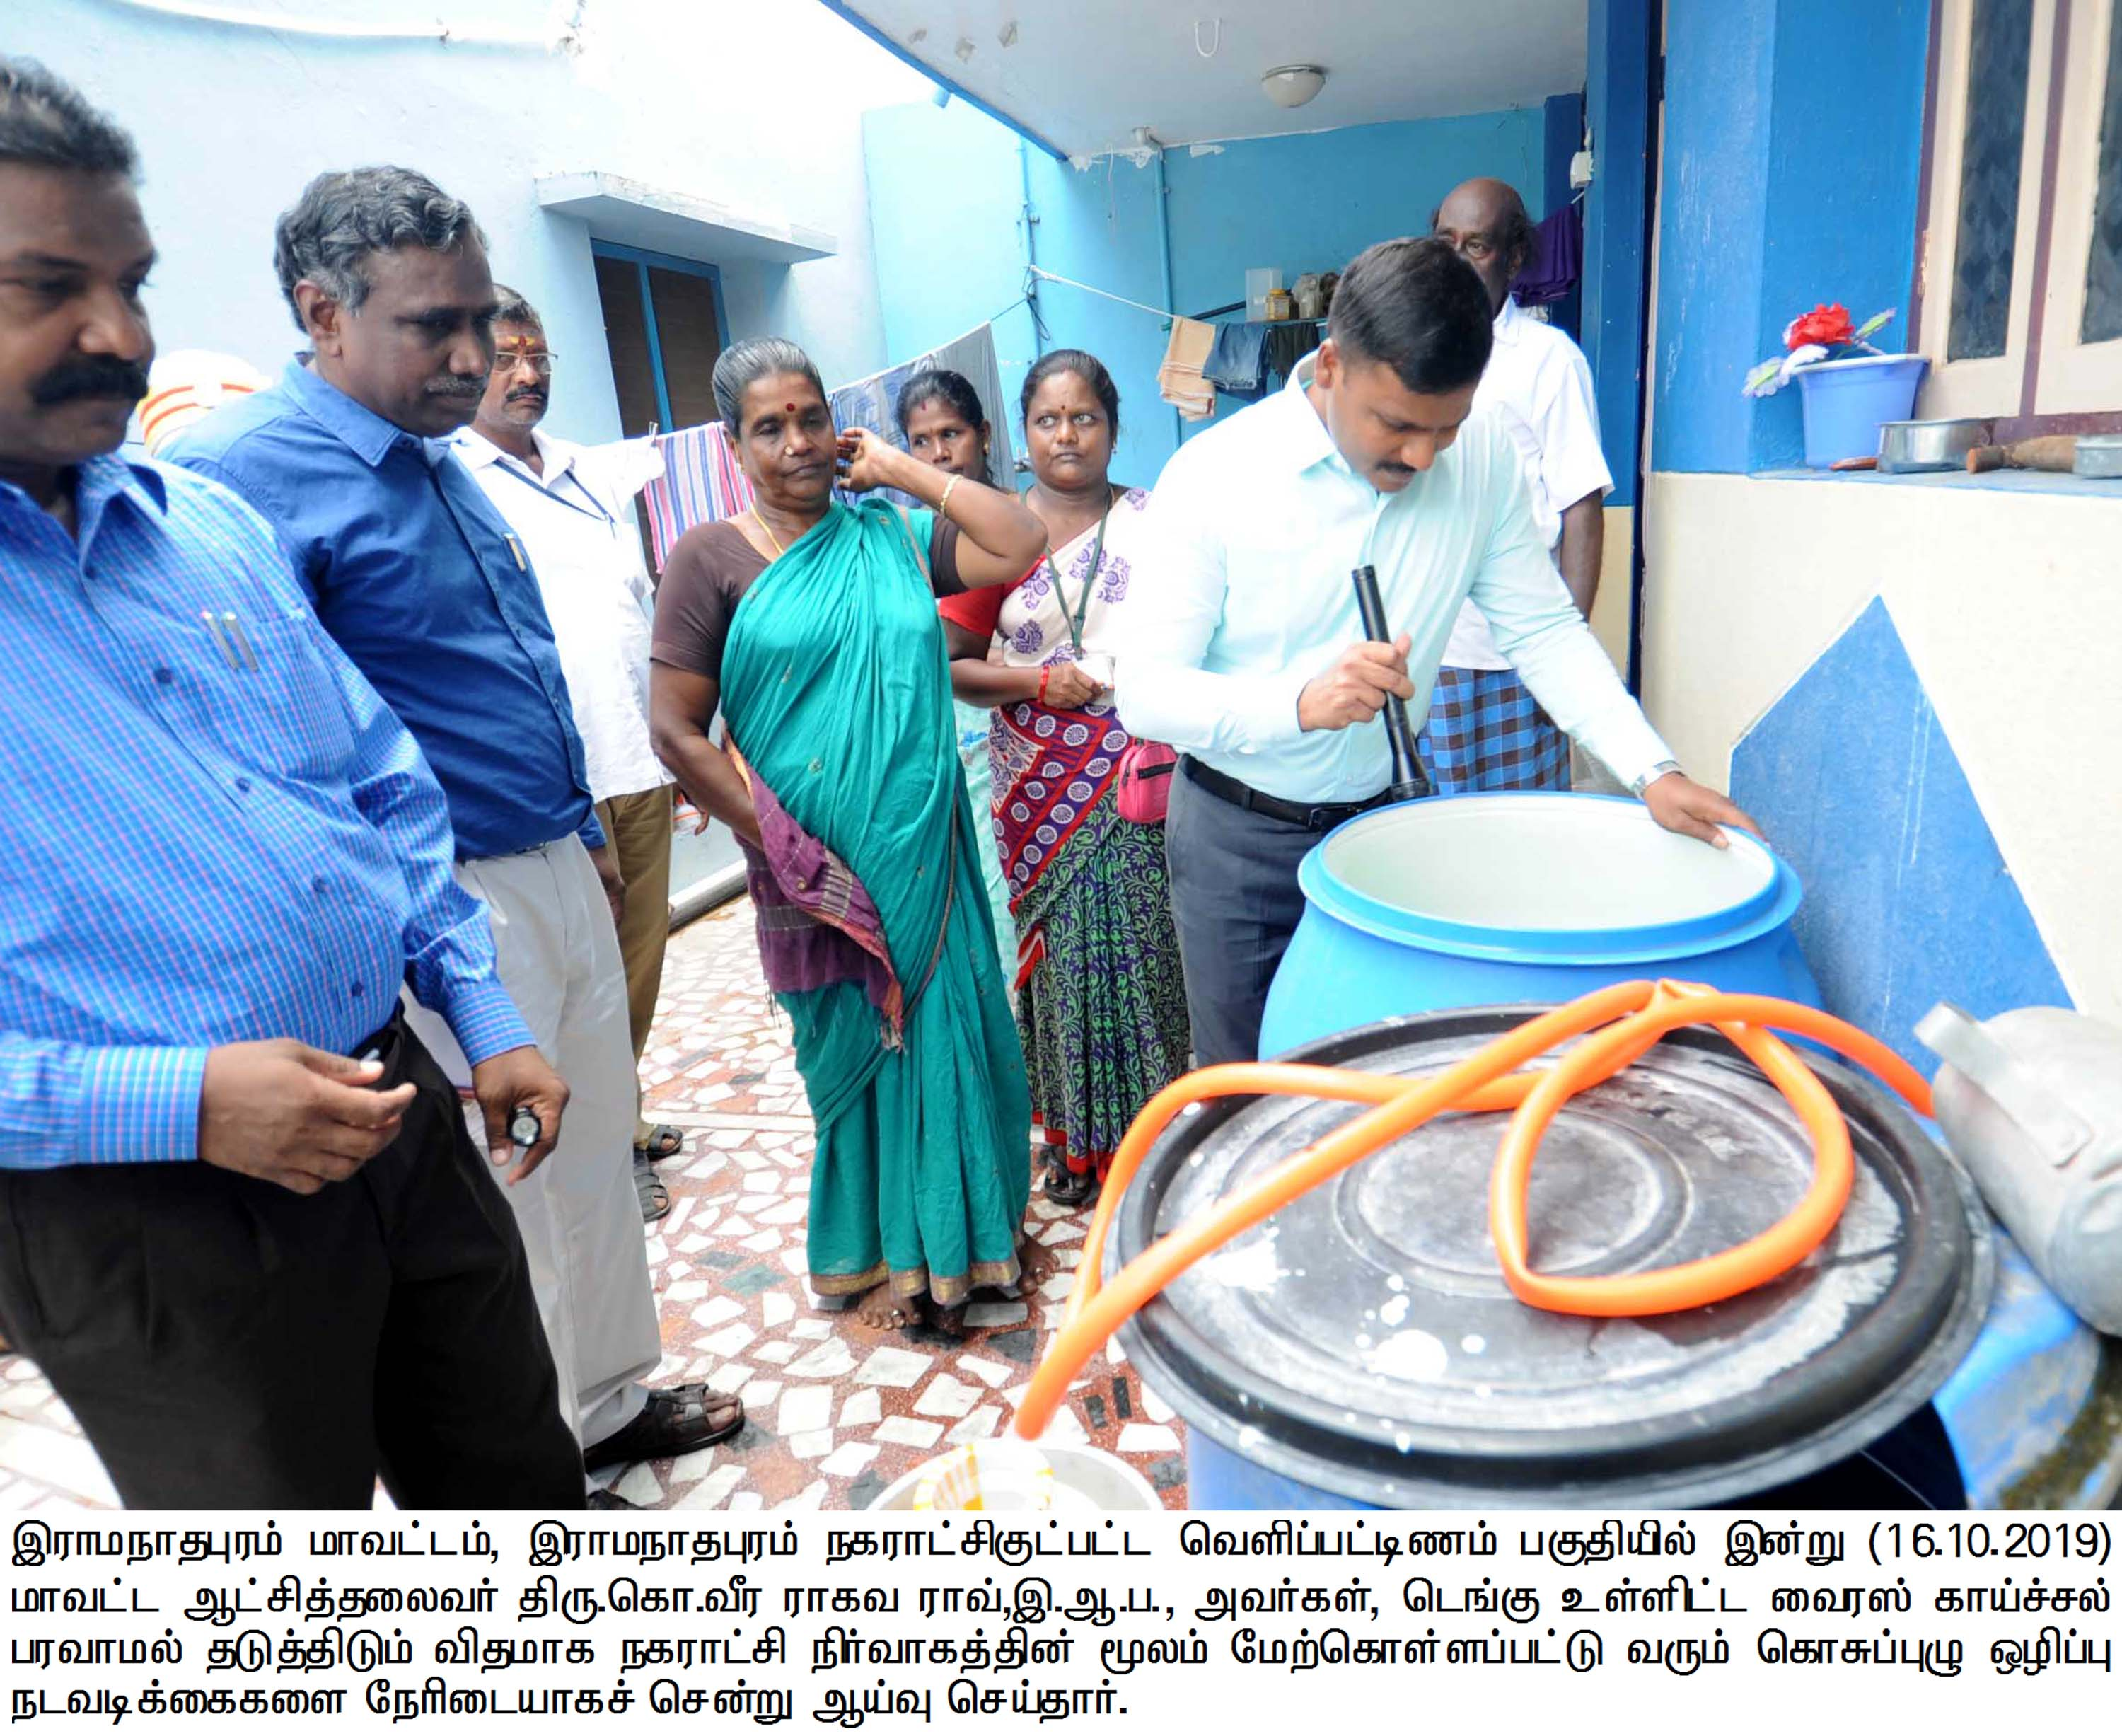 COLLECTOR INSPECTION-MUNICIPALITY-DENGUE PREVENTION WORKS_16/10/2019